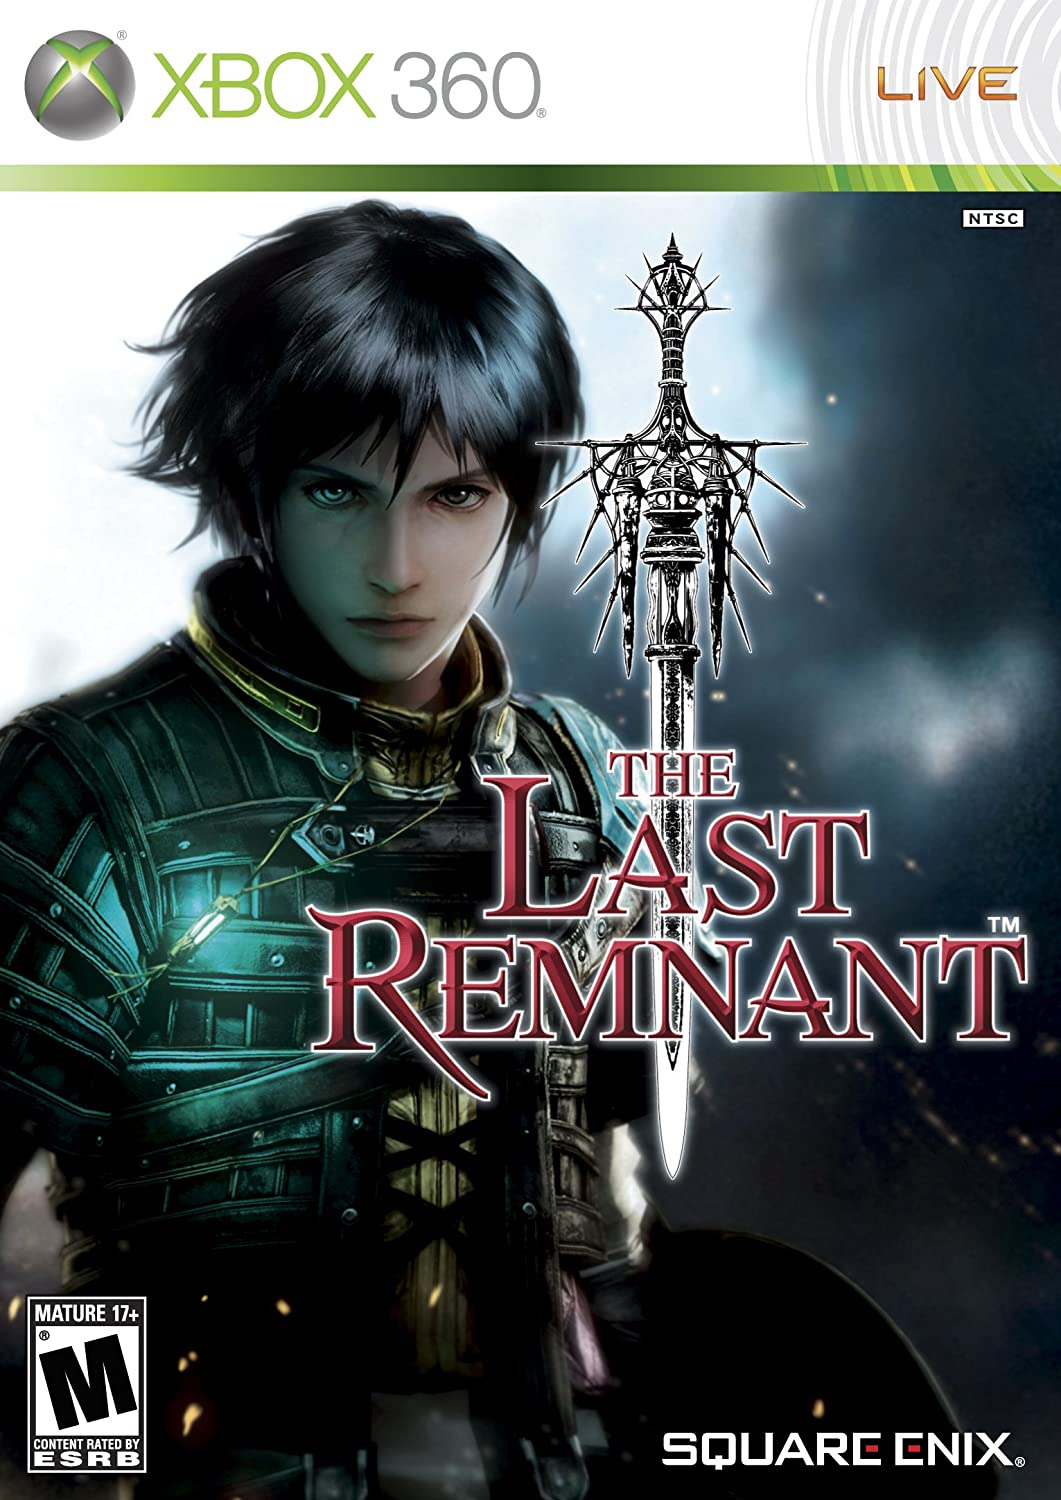 Amazon.com: The Last Remnant -Xbox 360: Artist Not Provided ...